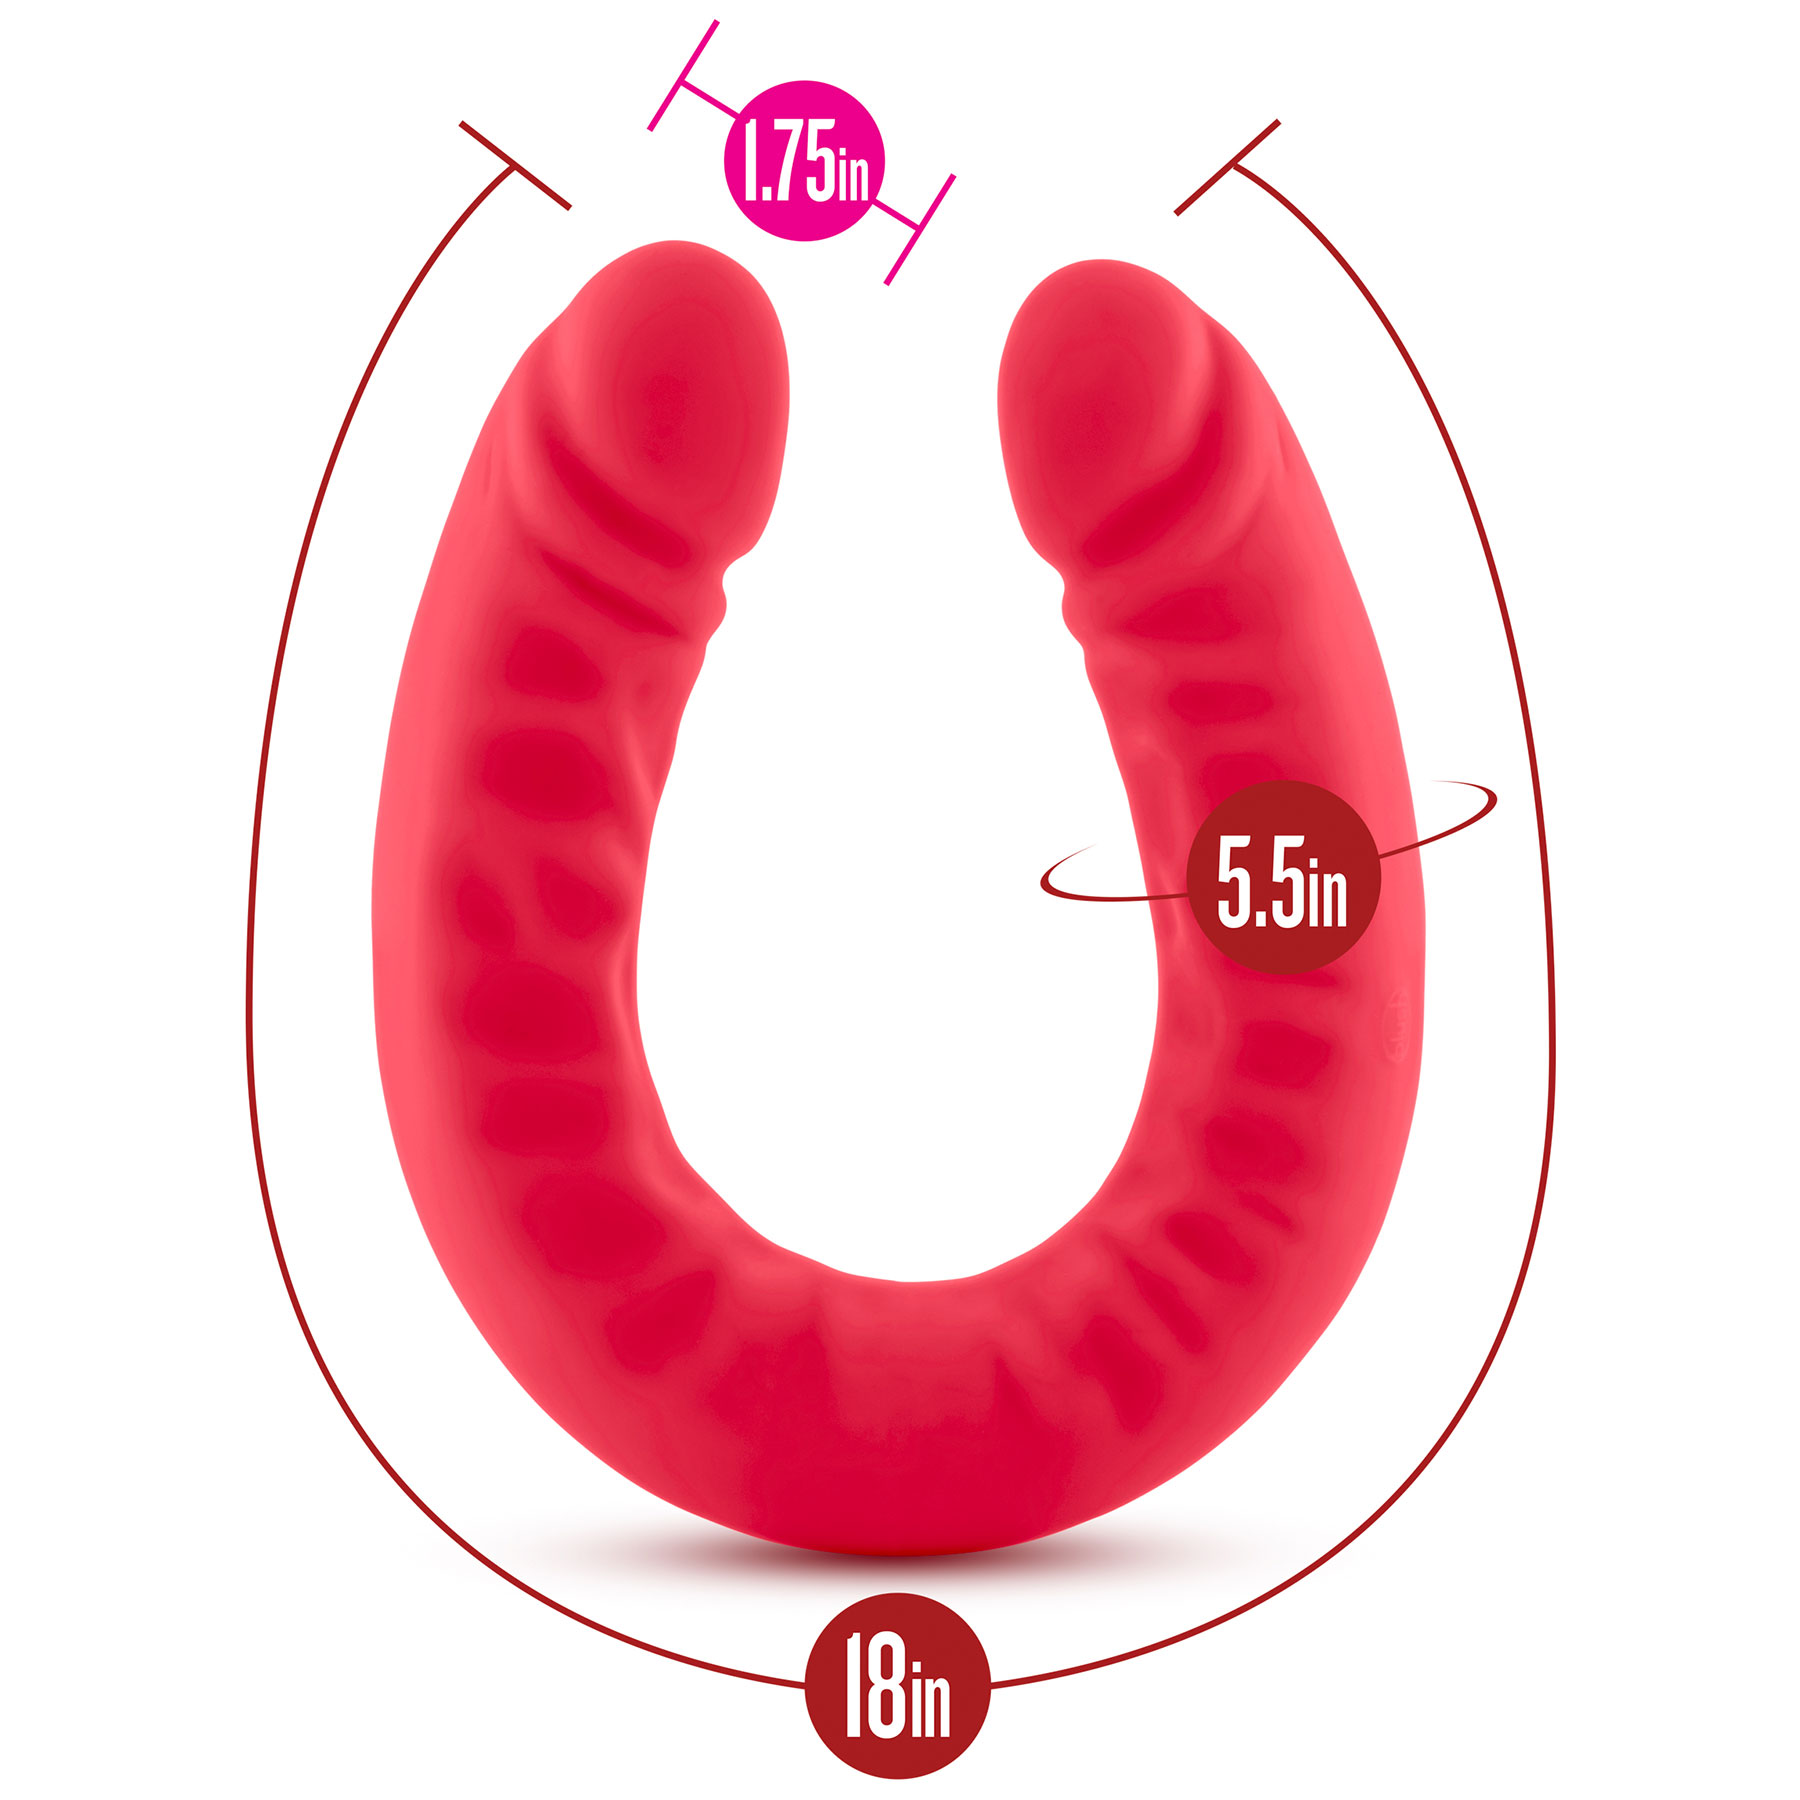 Ruse 18 Inch Silicone Double Headed Dildo - Measurements